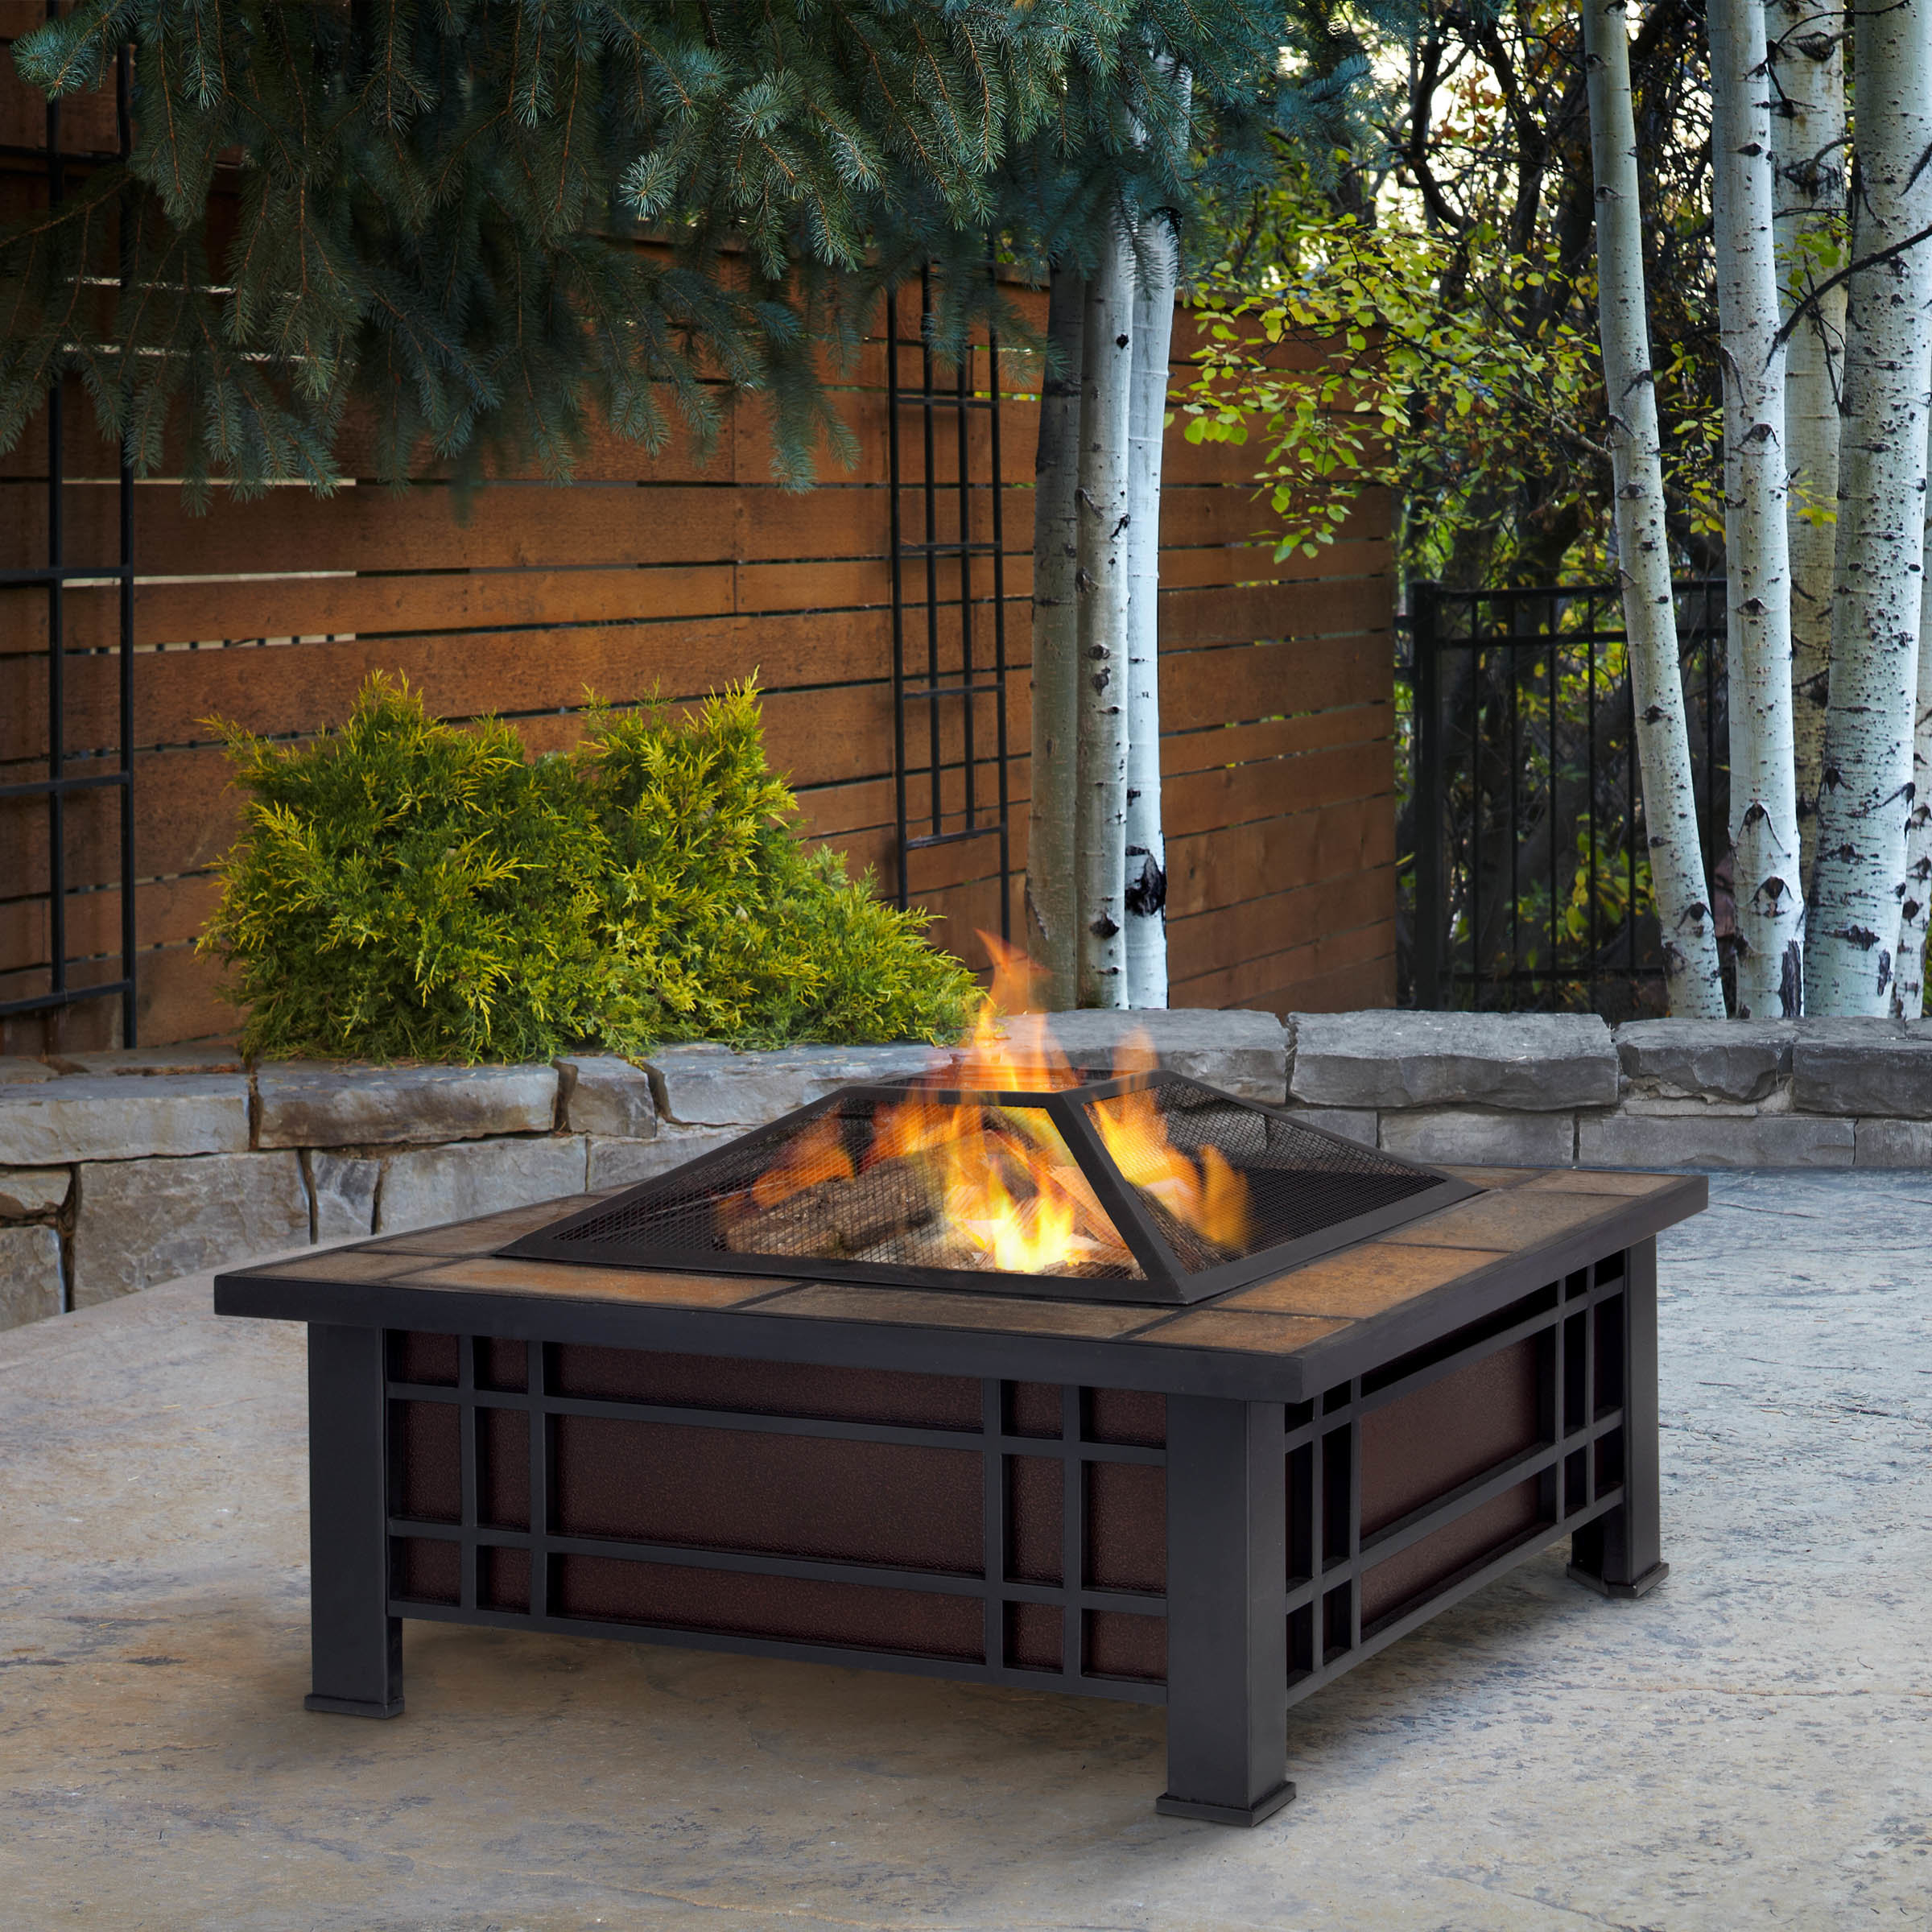 Bio Ethanol Outdoor Fireplaces Fire Pits Youll Love Wayfair within dimensions 2400 X 2400